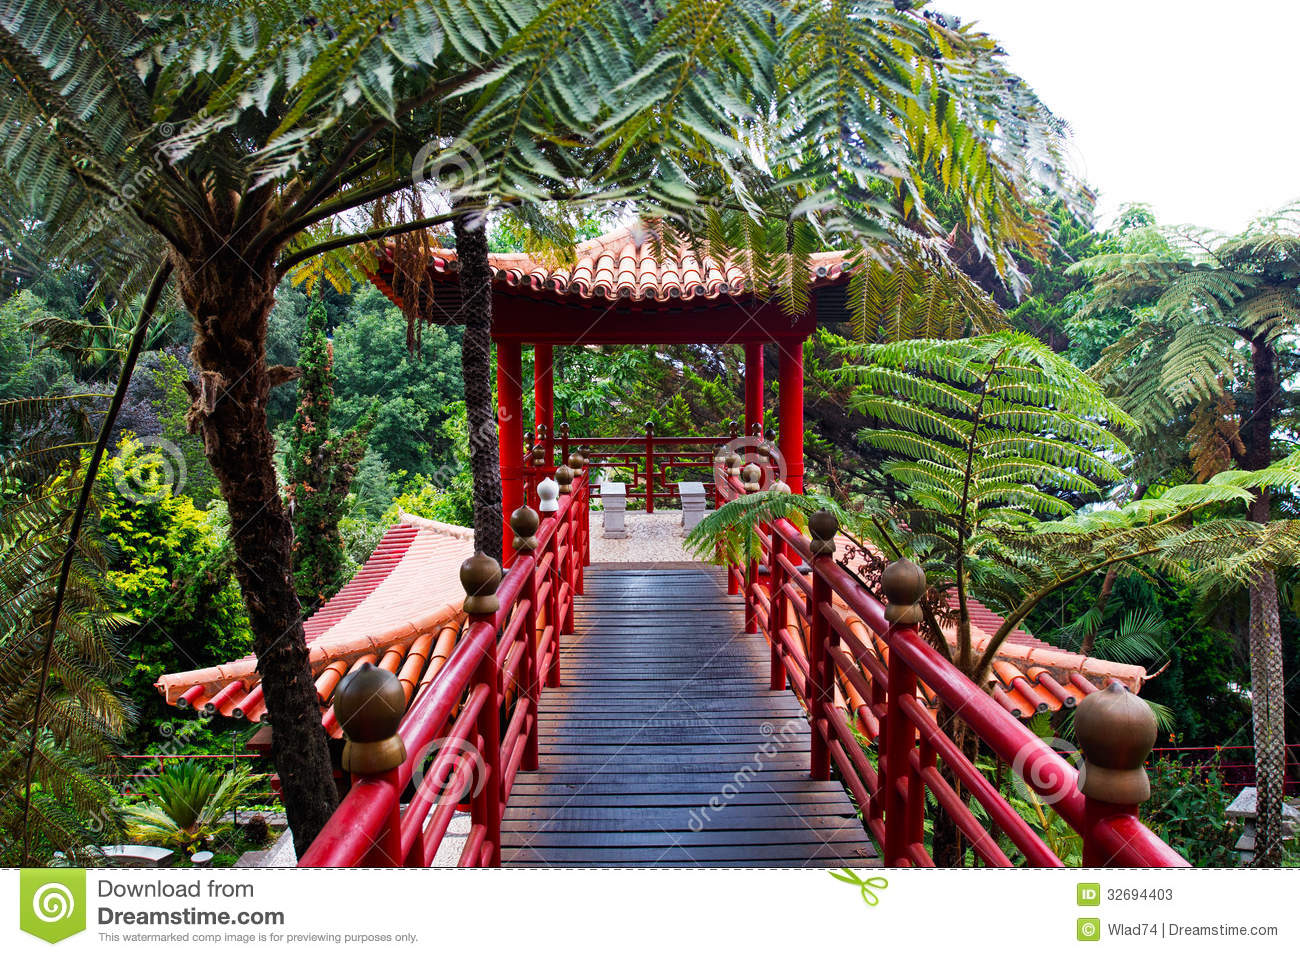 Jardin tropical dans le style japonais photos stock for Style japonnais